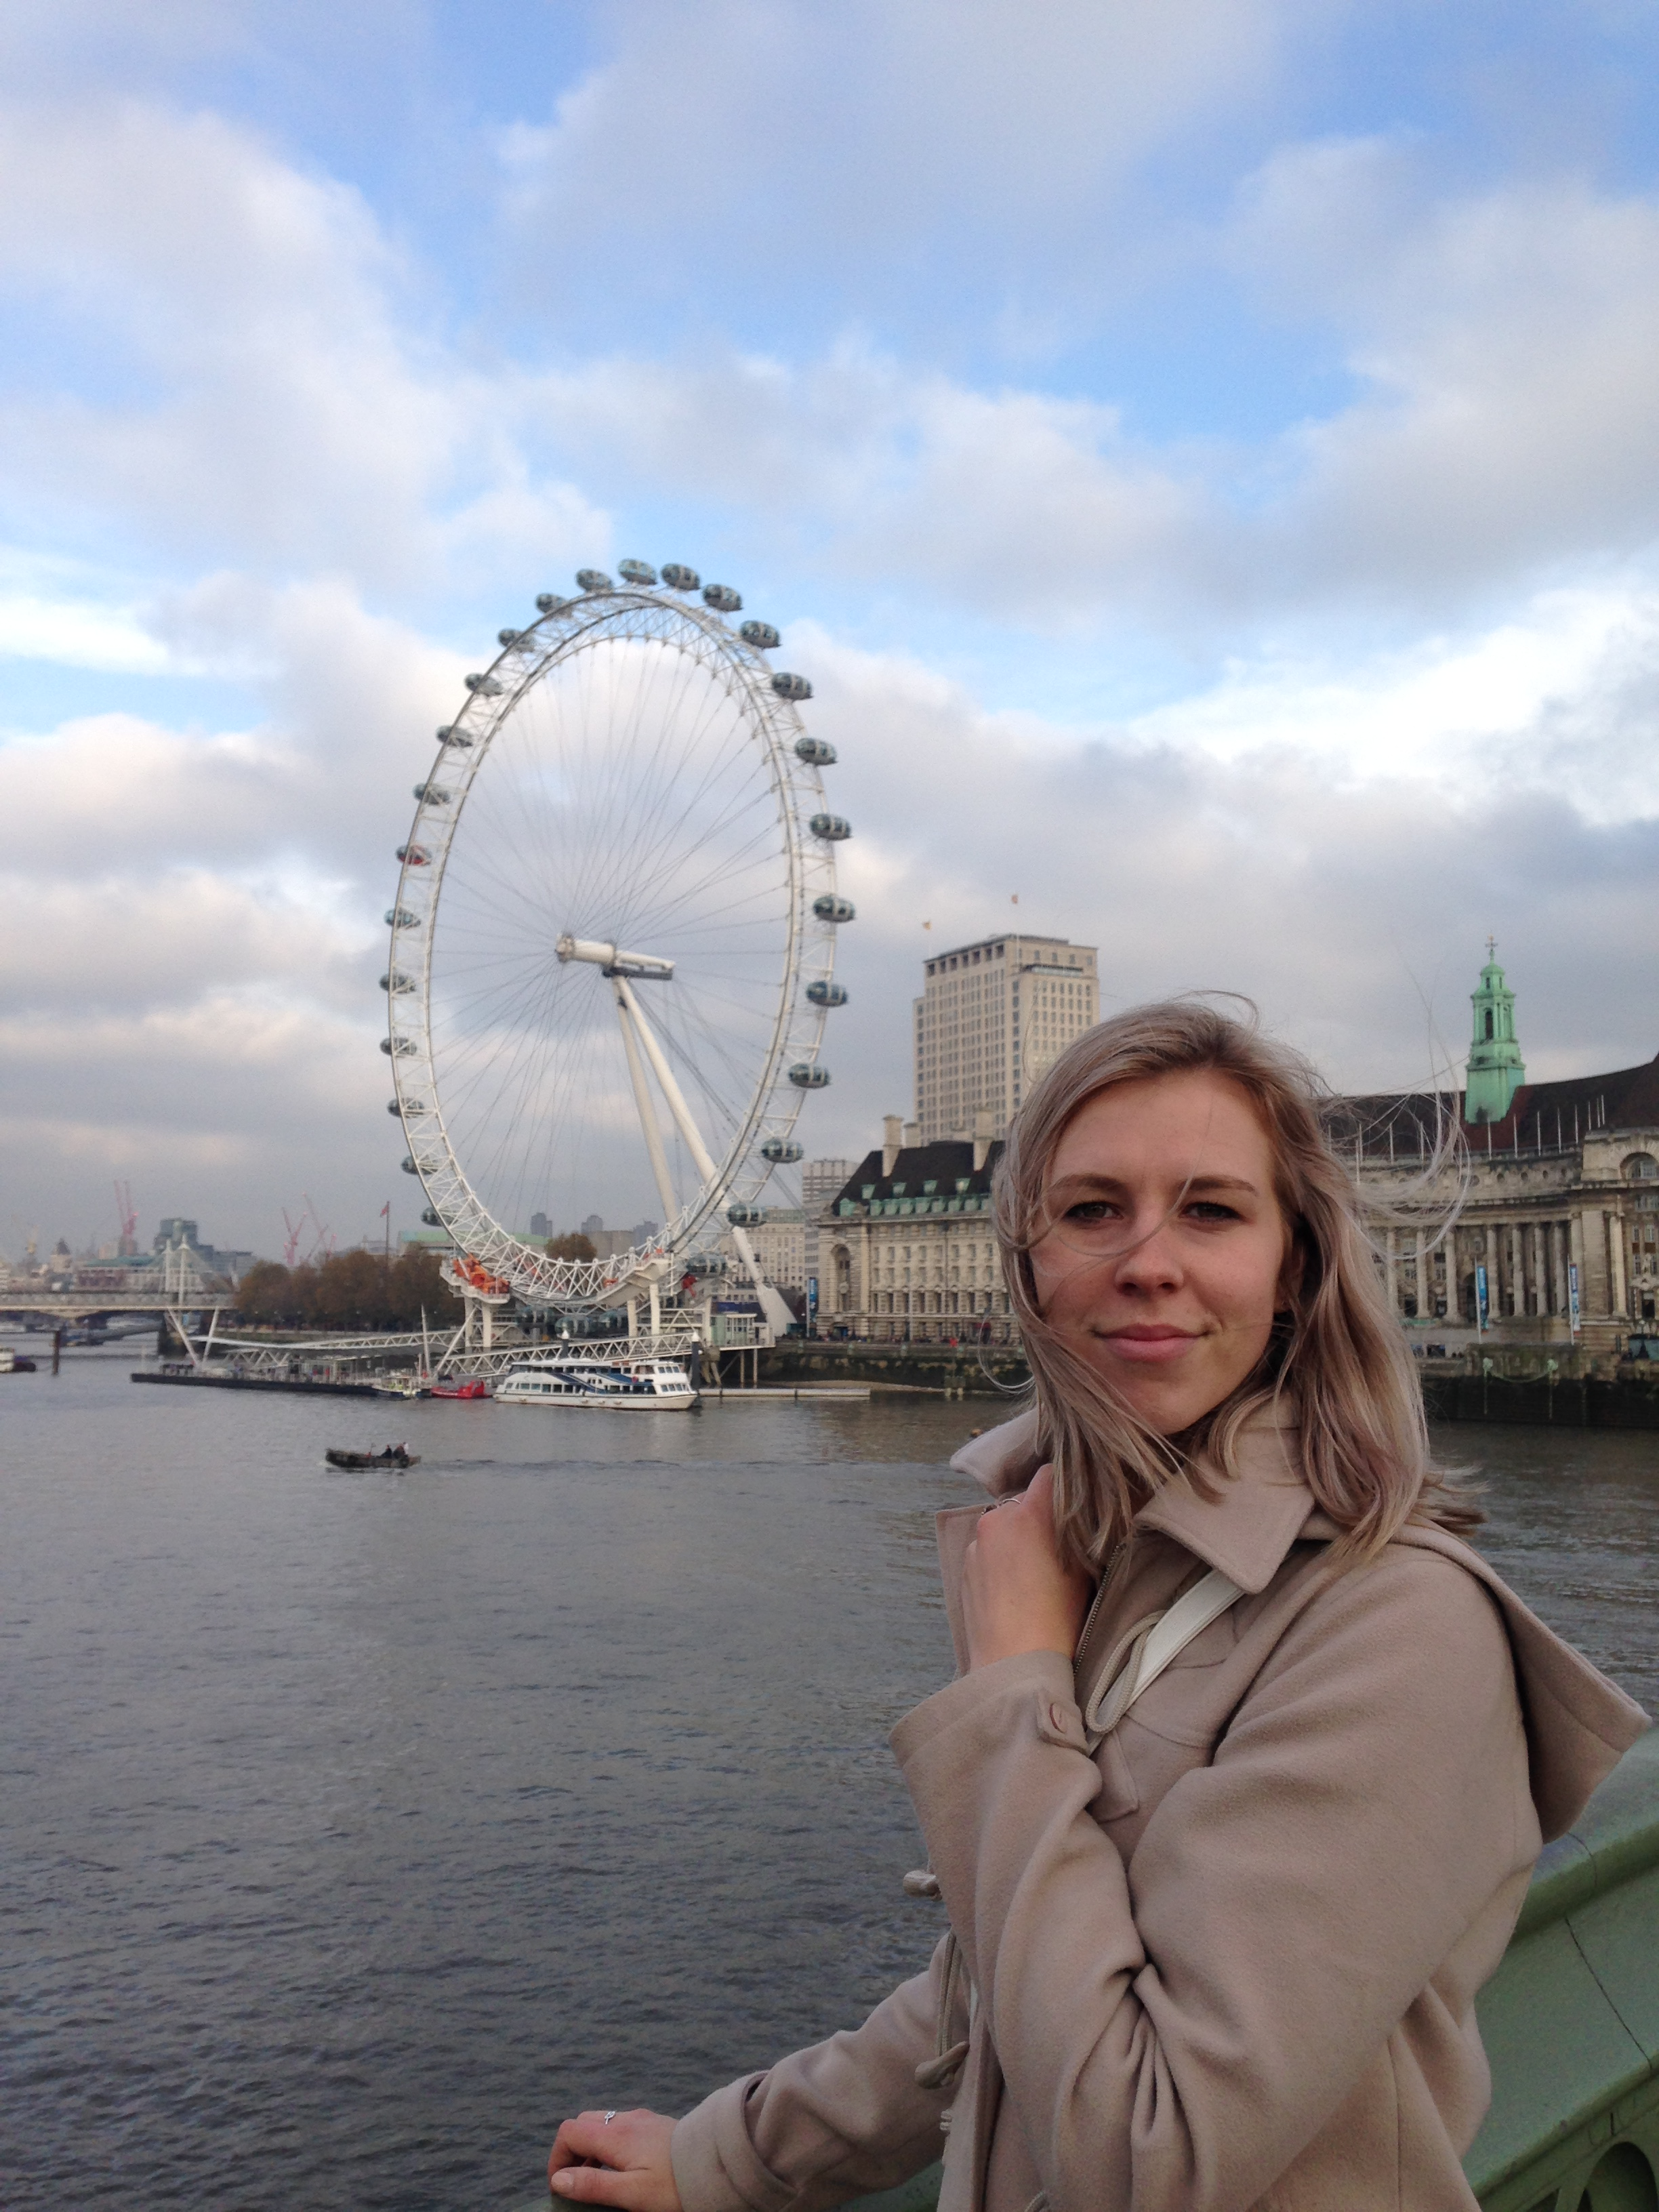 in front of the london eye, november 2014